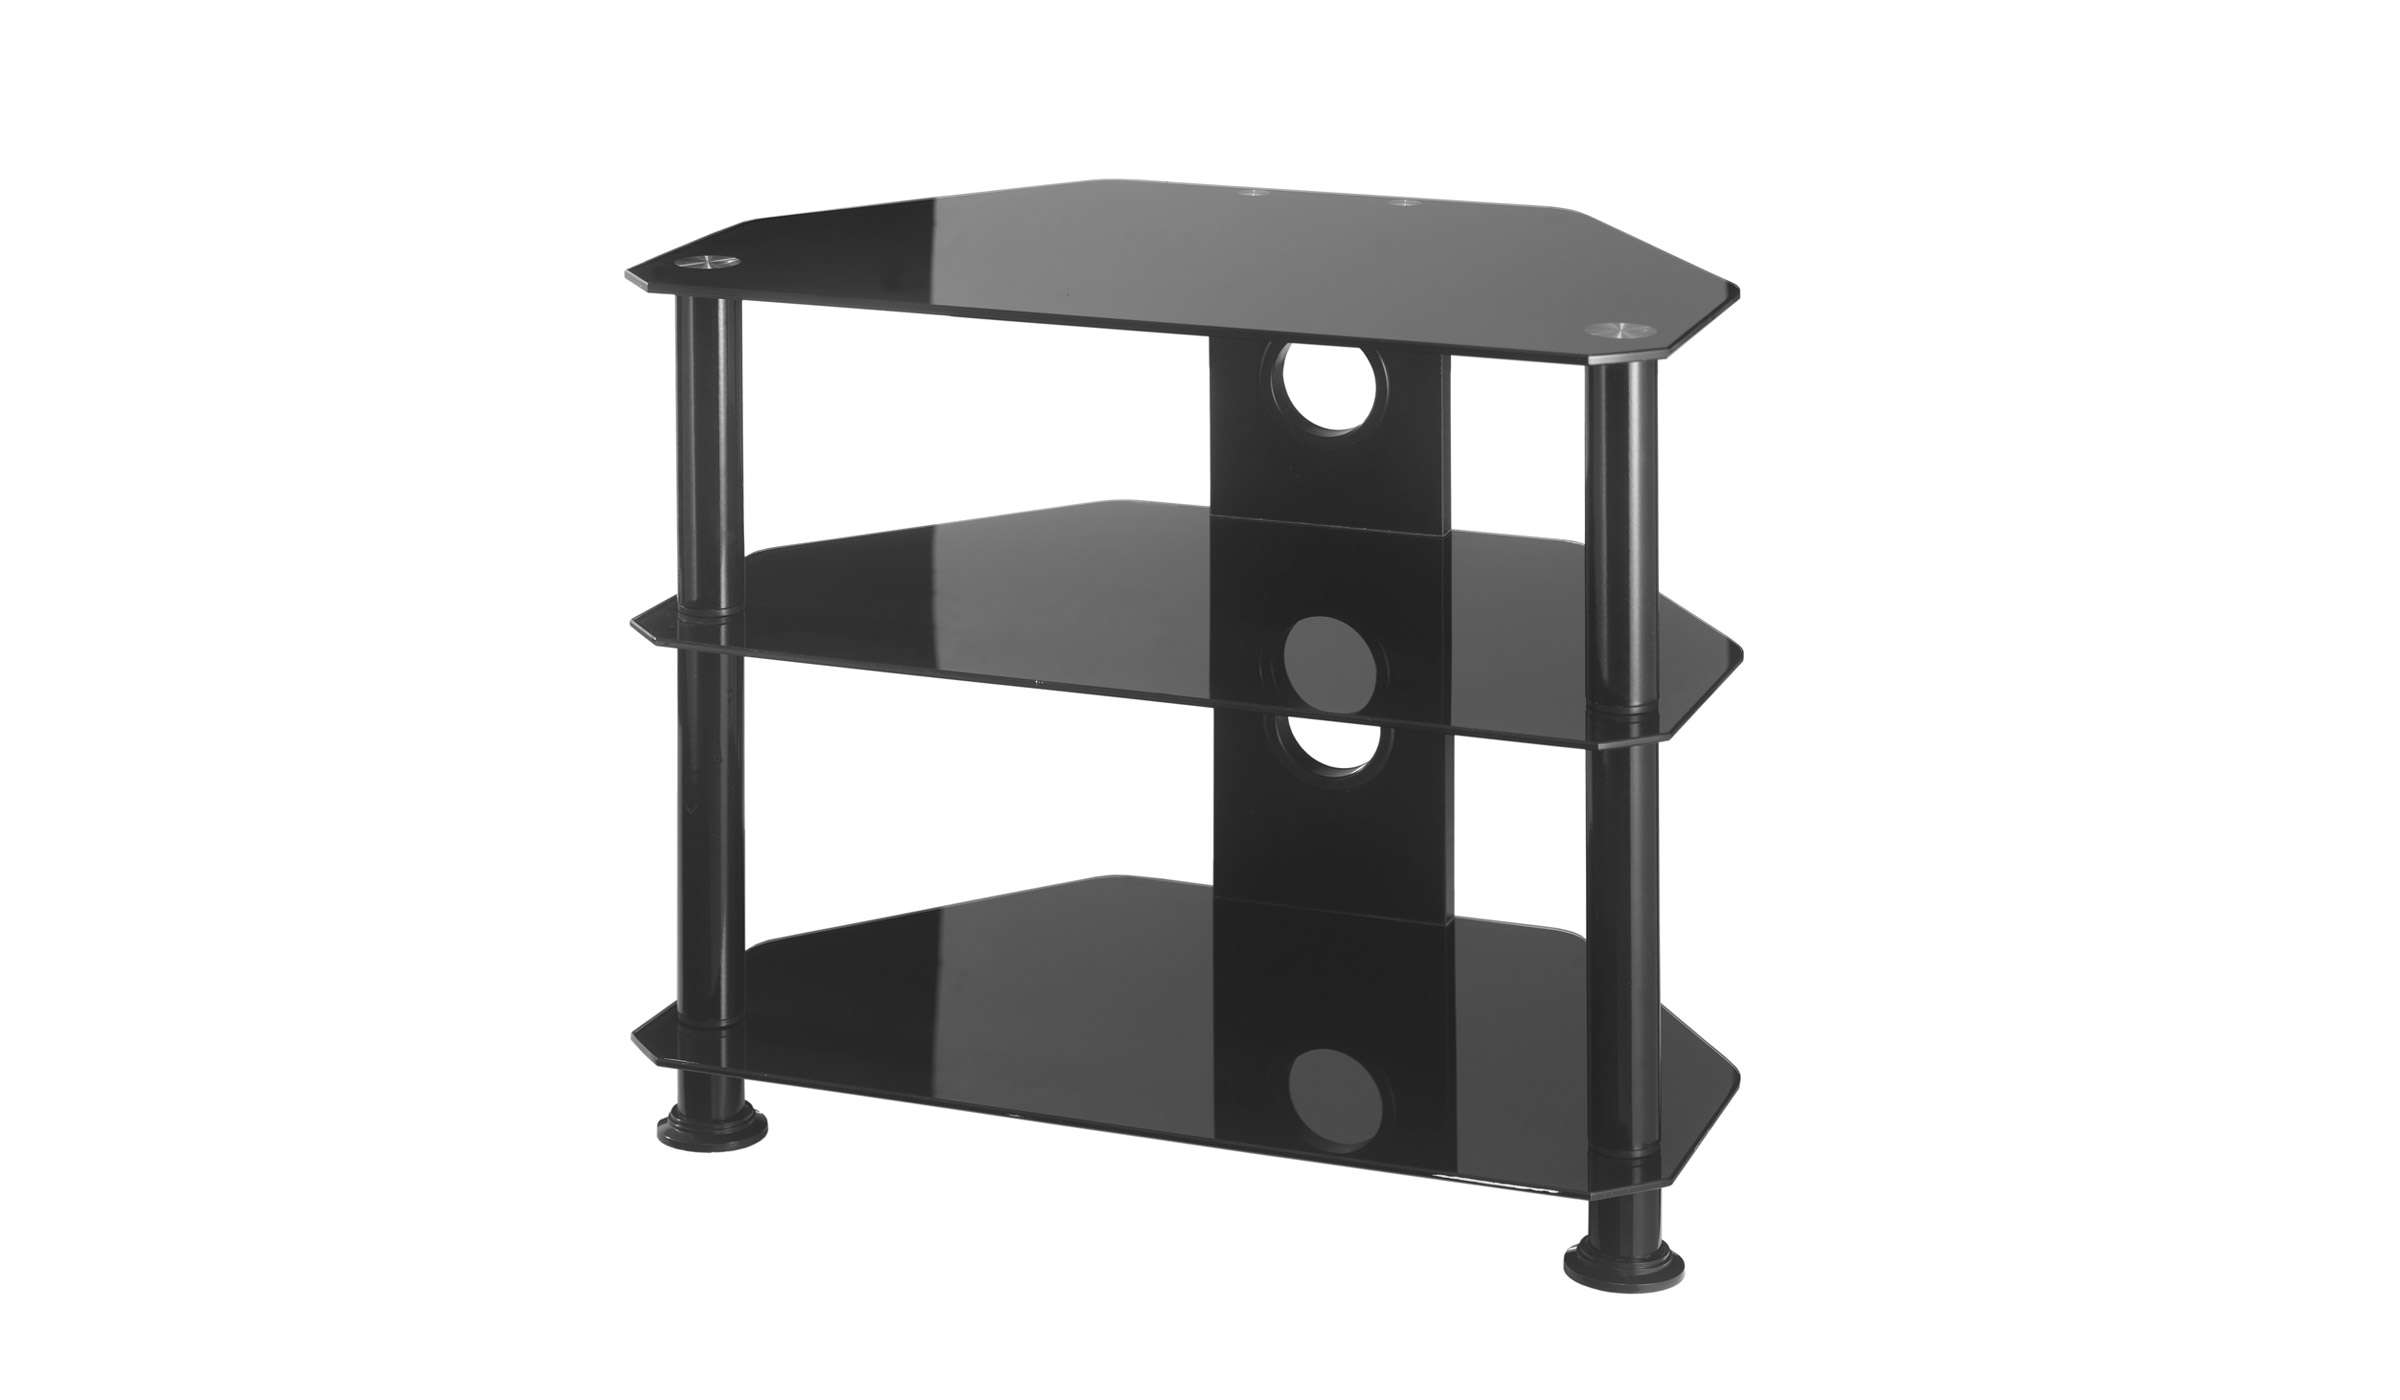 Small Glass Corner Tv Stand Up To 26 Inch Tv | Mmt Db600 Intended For Black Corner Tv Cabinets (View 19 of 20)